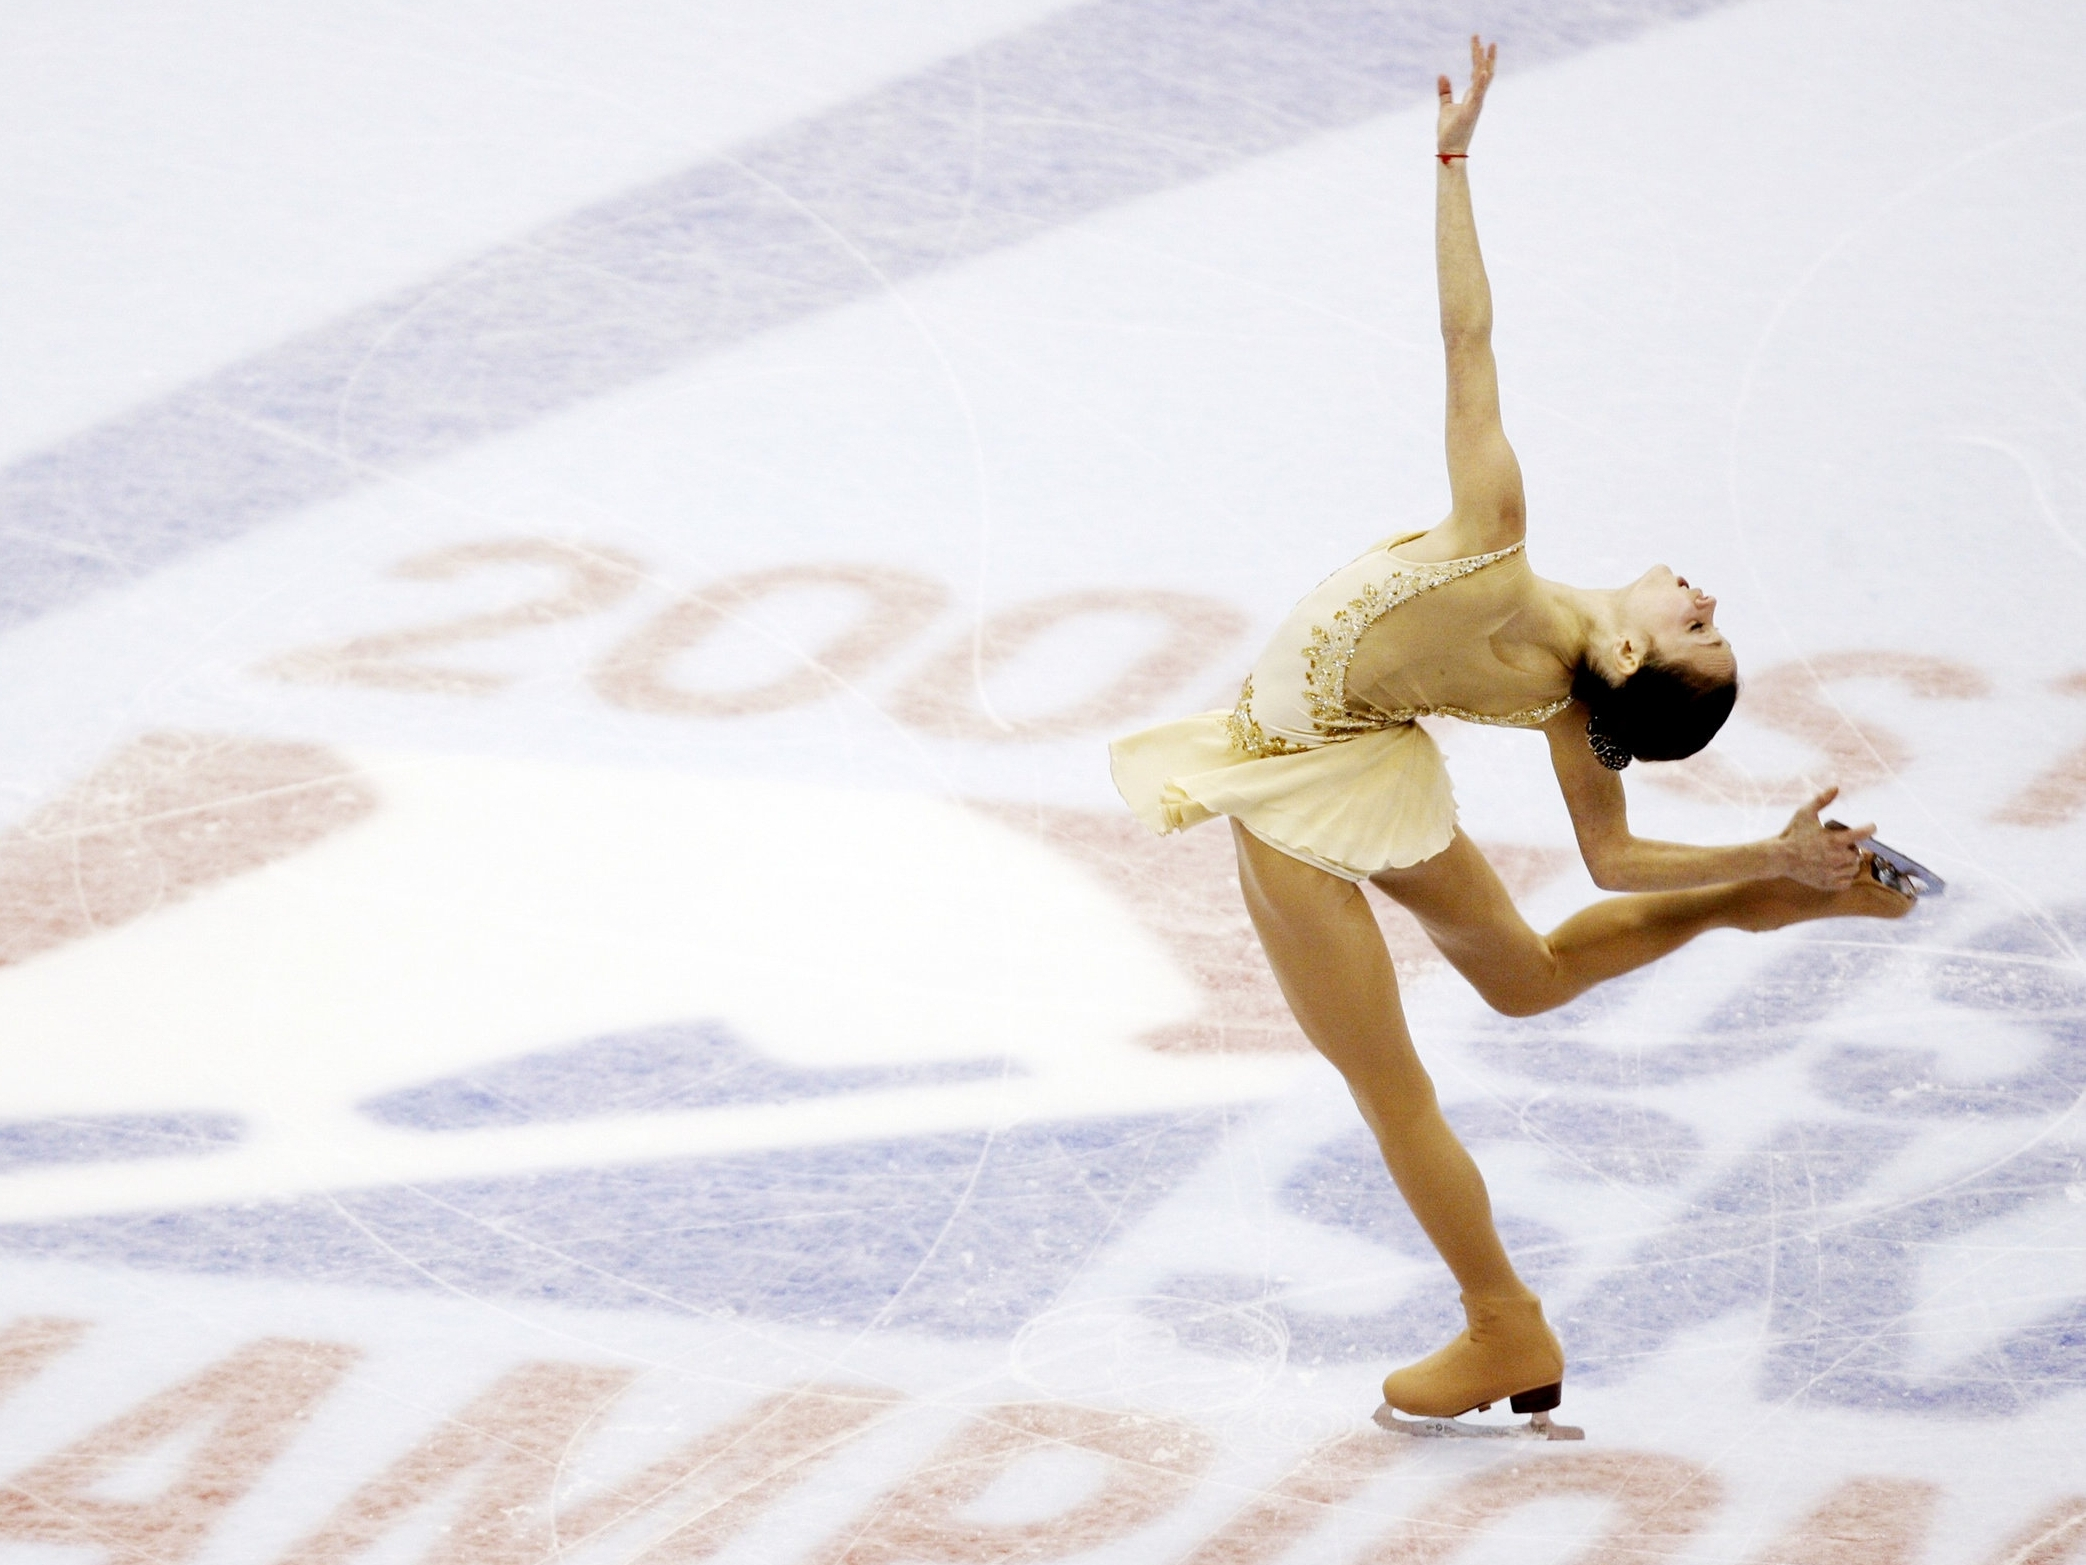 MOVE PAST FEAR OF FAILURE INTO FREEDOM - SASHA COHEN, 2X OLYMPIC FIGURE SKATER, SILVER MEDALIST